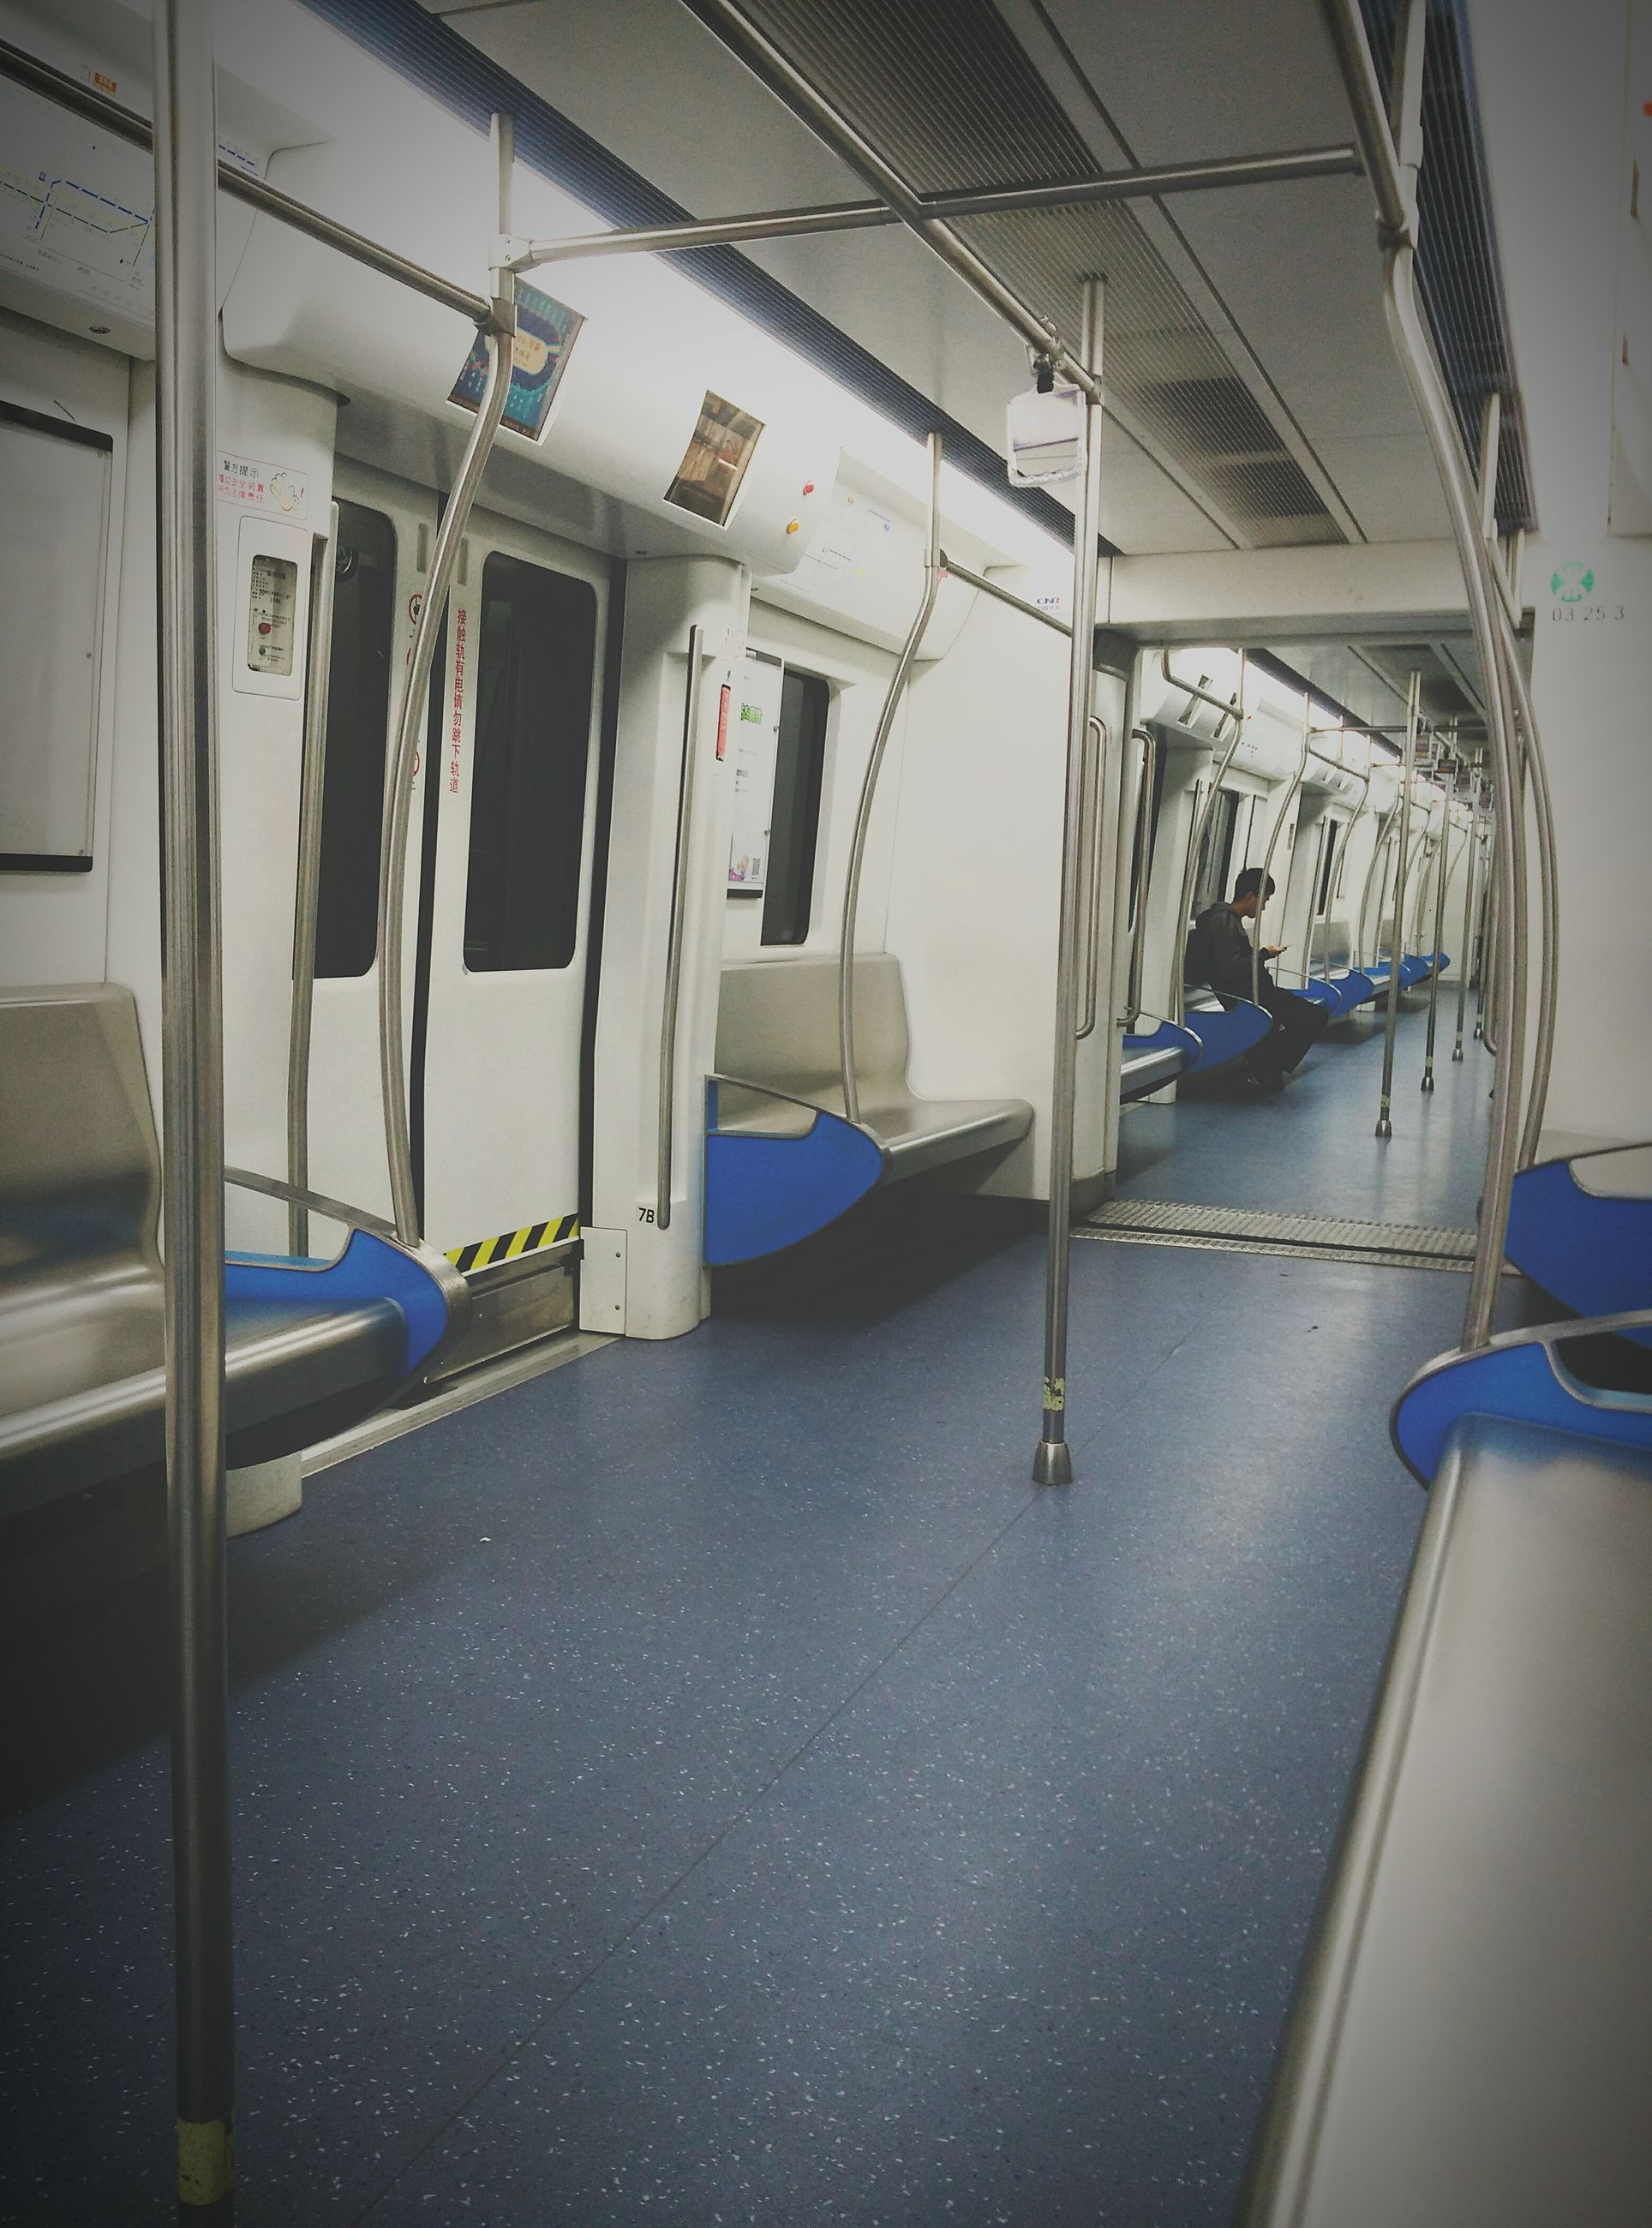 transportation, indoors, mode of transport, vehicle interior, interior, empty, window, public transportation, absence, abandoned, no people, day, train - vehicle, vehicle seat, built structure, travel, land vehicle, nautical vessel, damaged, passenger train